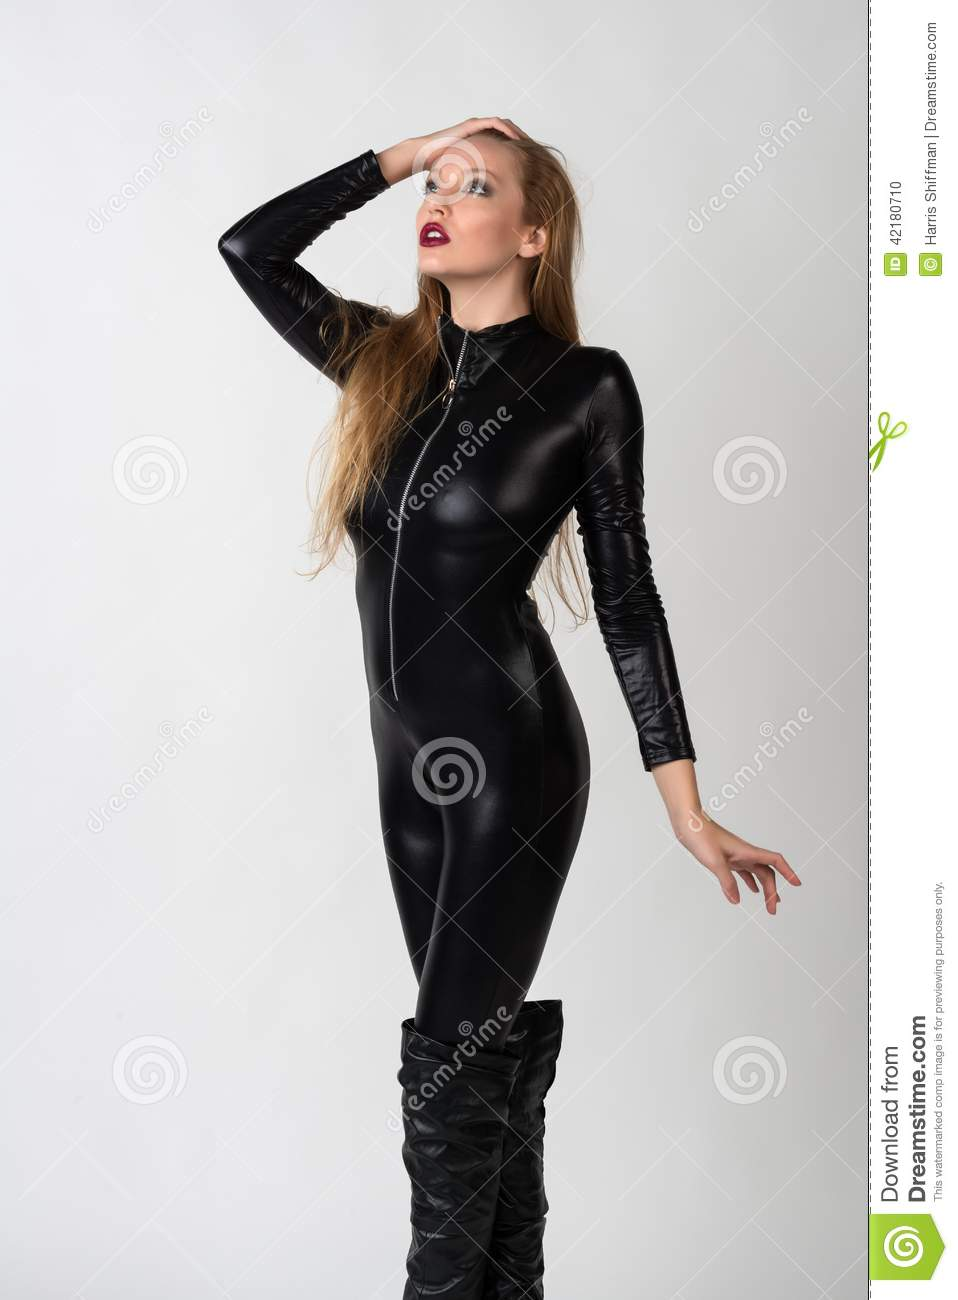 For Blonde latex catsuit seems me